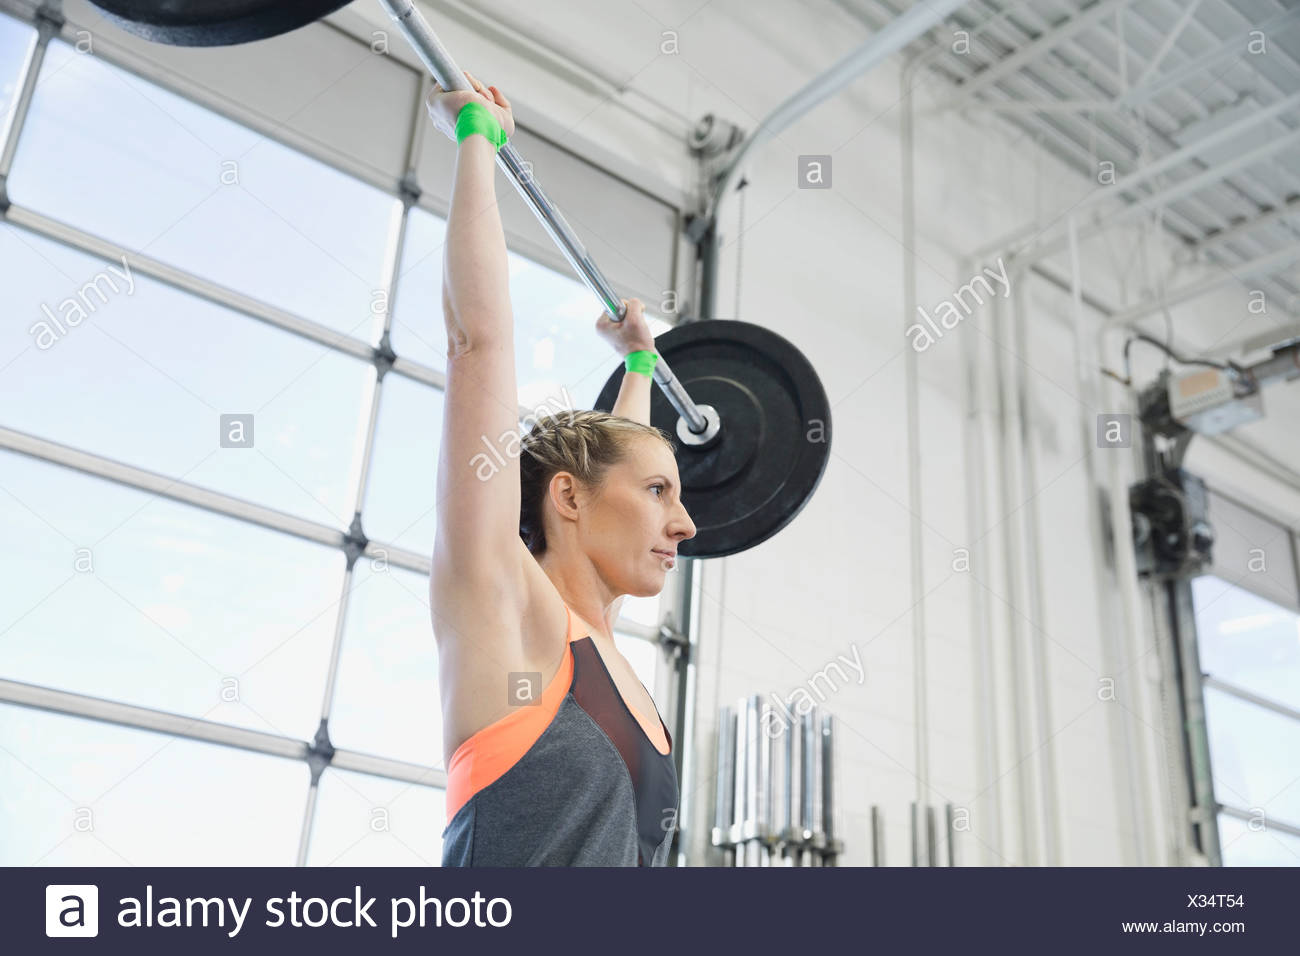 Woman practicing overhead lift with barbell - Stock Image